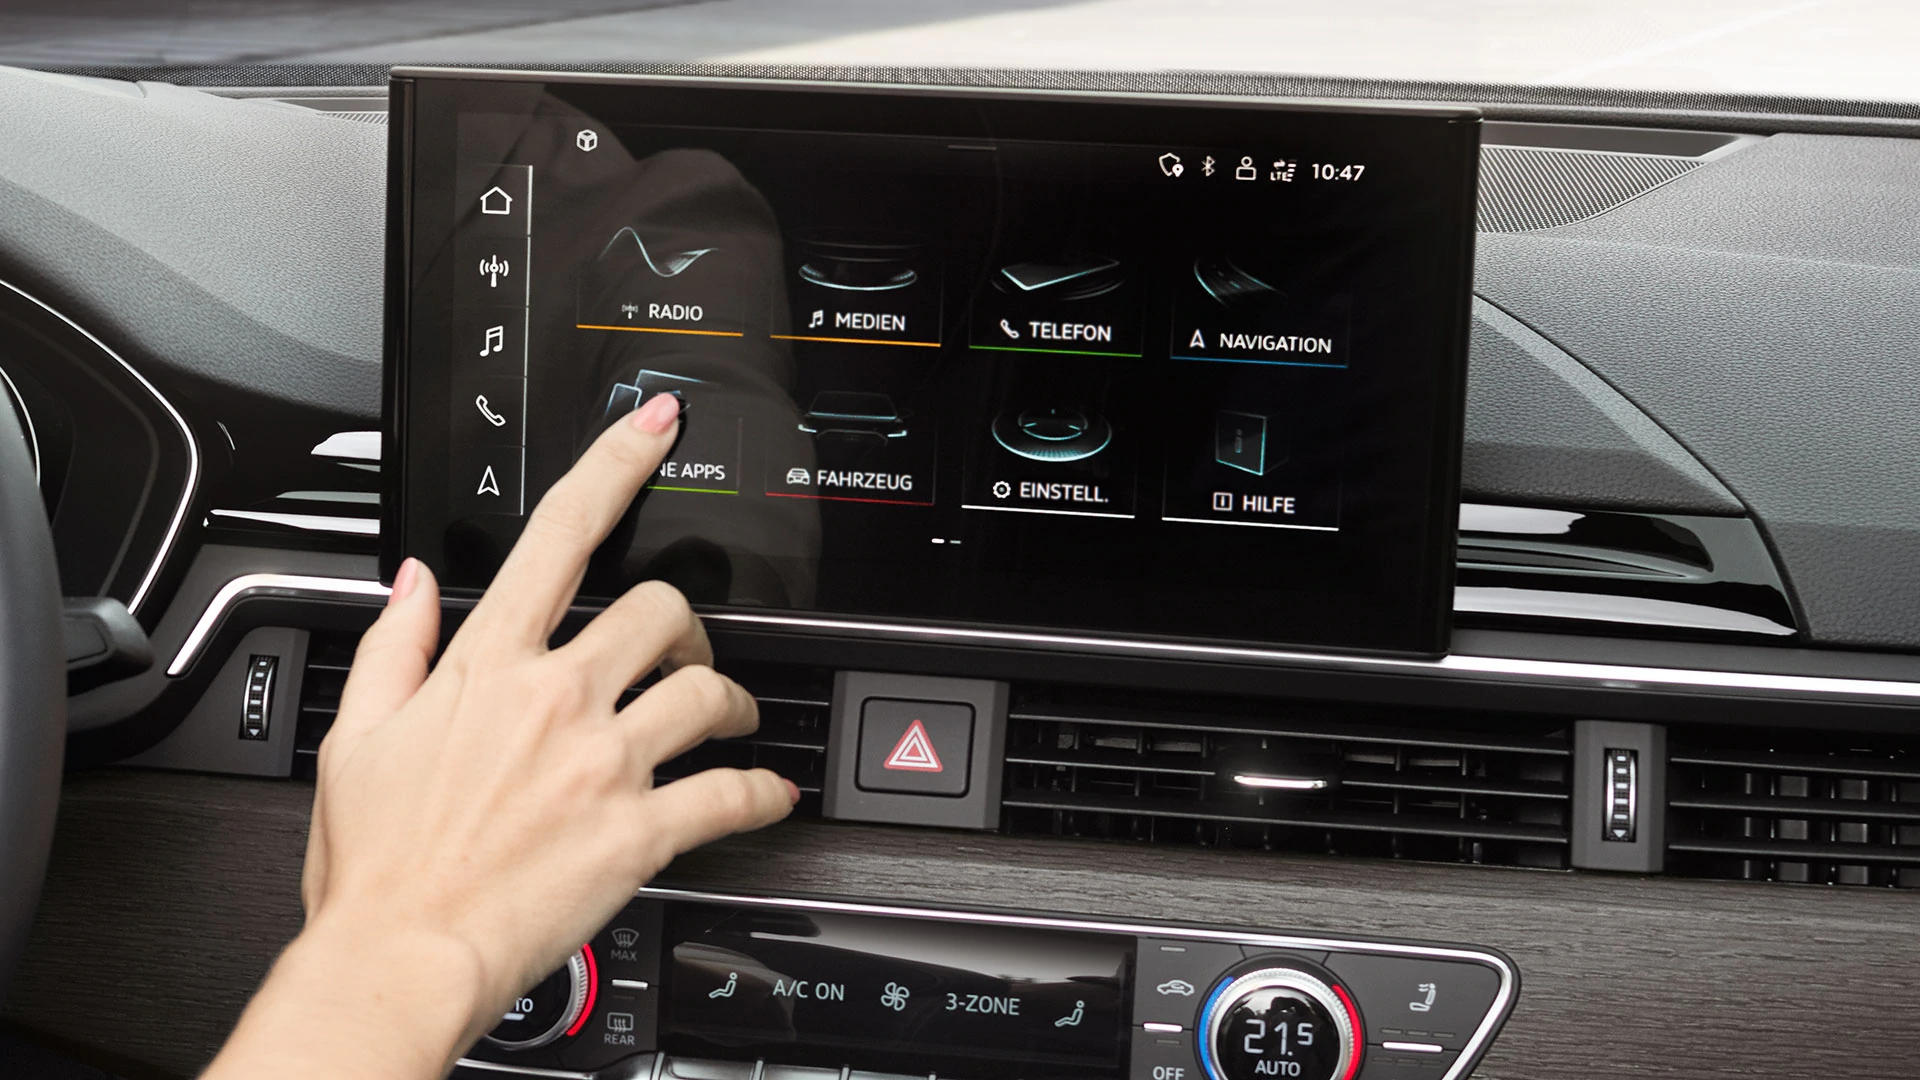 Display im Audi A5 Sportback 2020